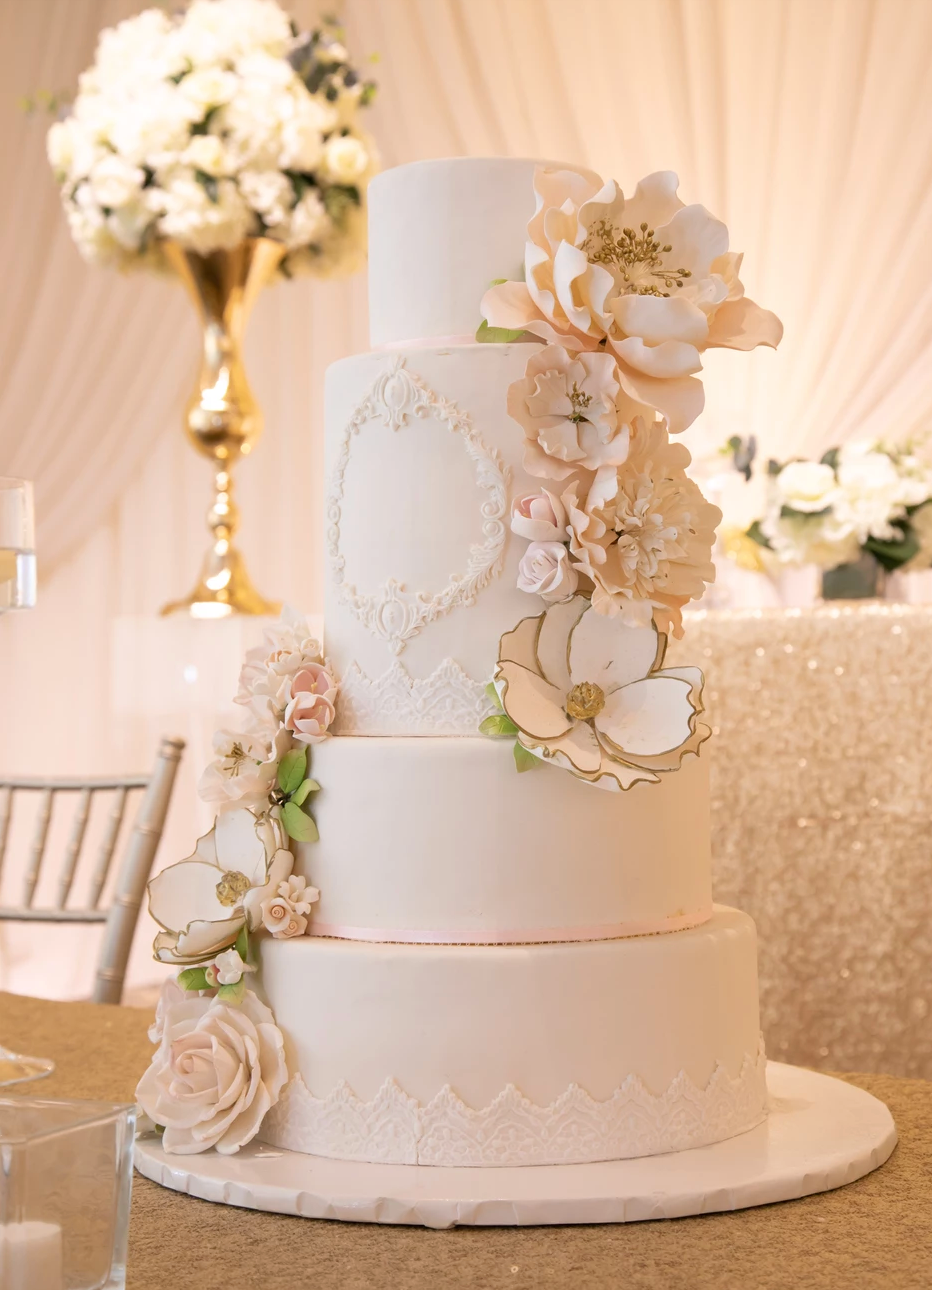 A white, 4-tier wedding cake decorated with flowers.